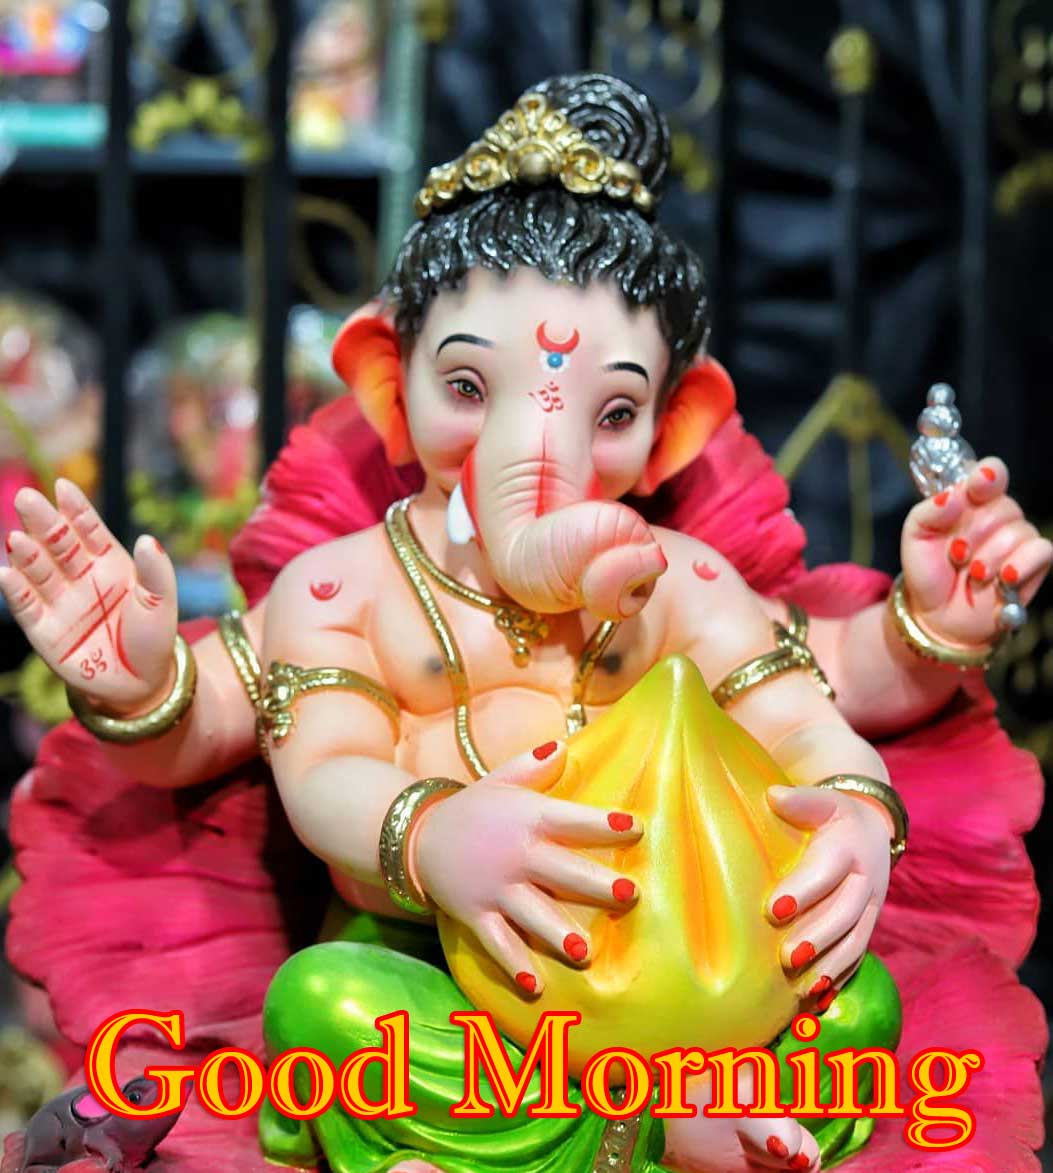 Good Morning Ganpati Bappa Photo Free HD